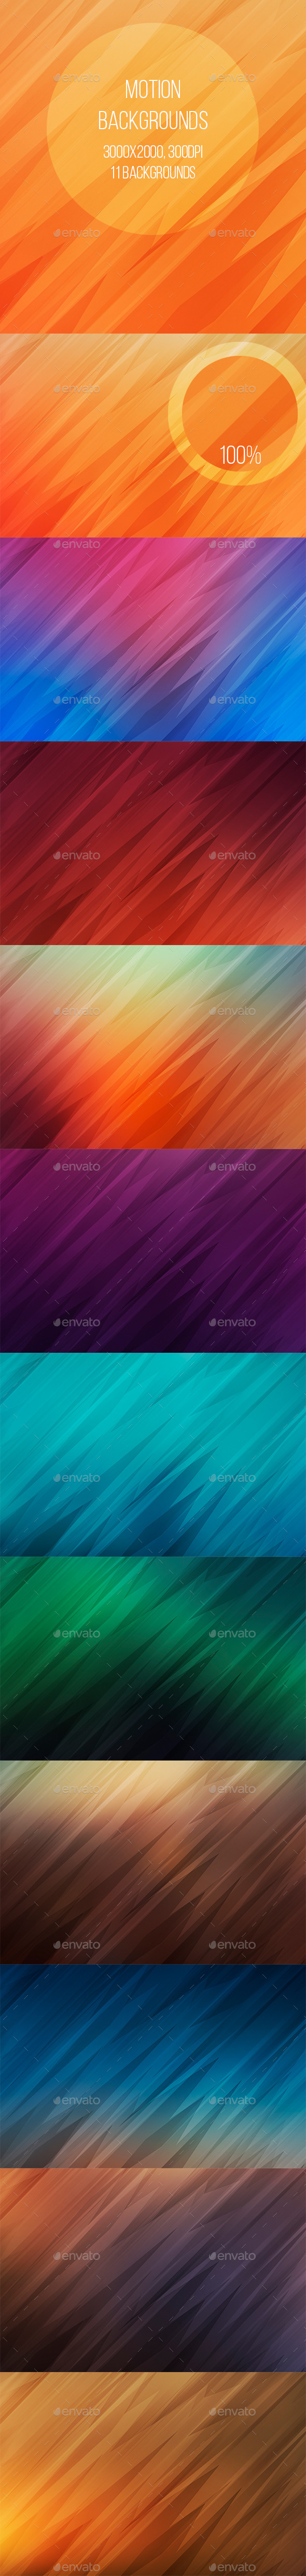 GraphicRiver Motion Backgrounds 9517057